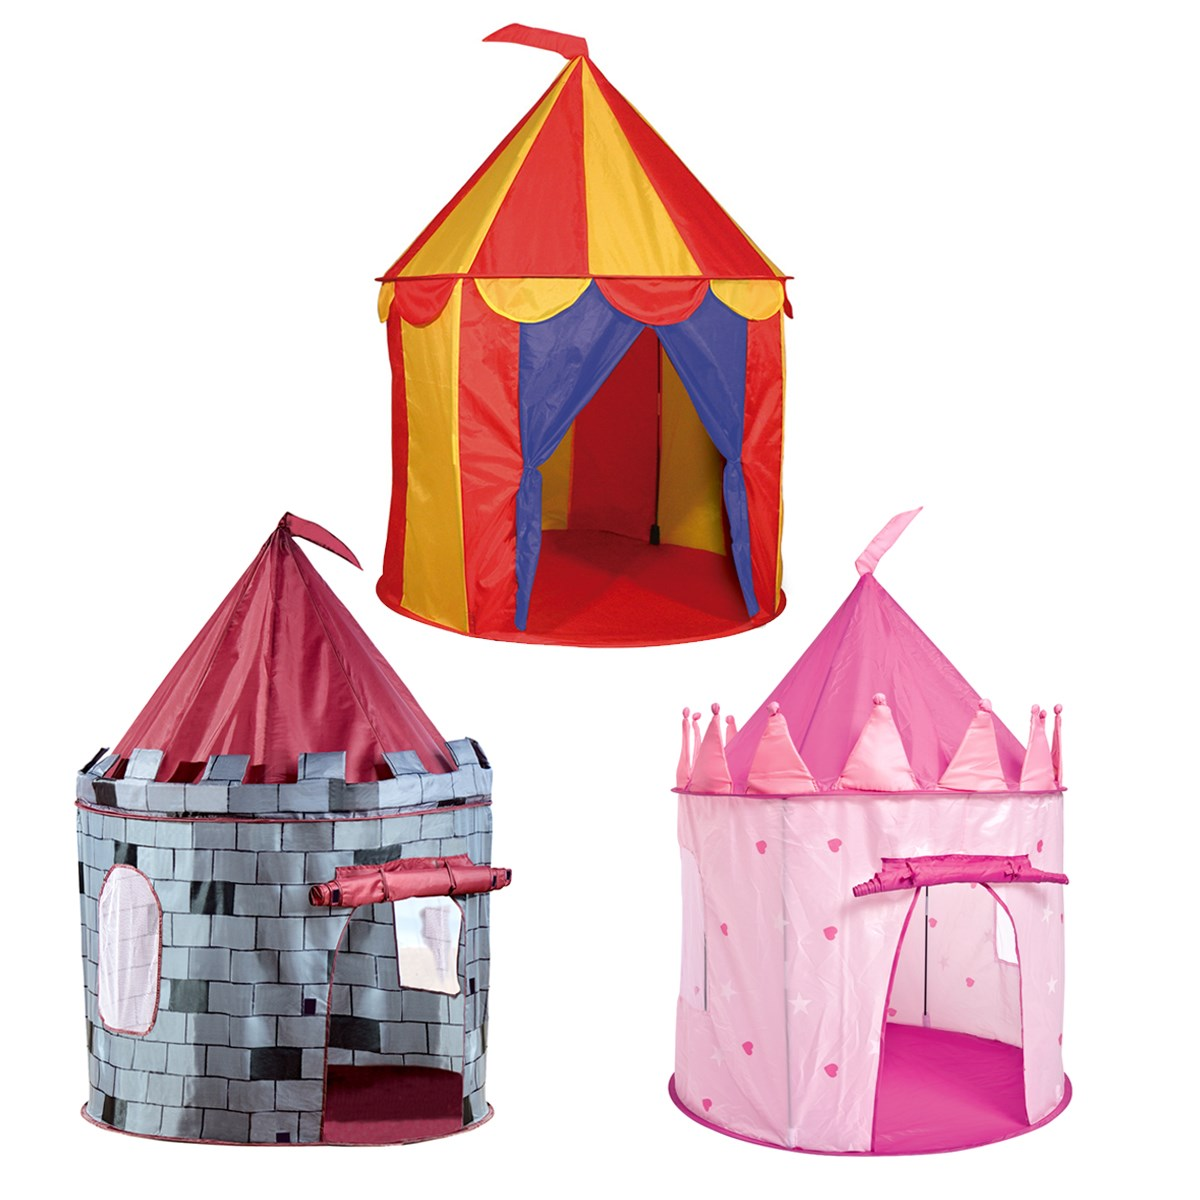 Childrens Play Tents Princess Knight or Circus